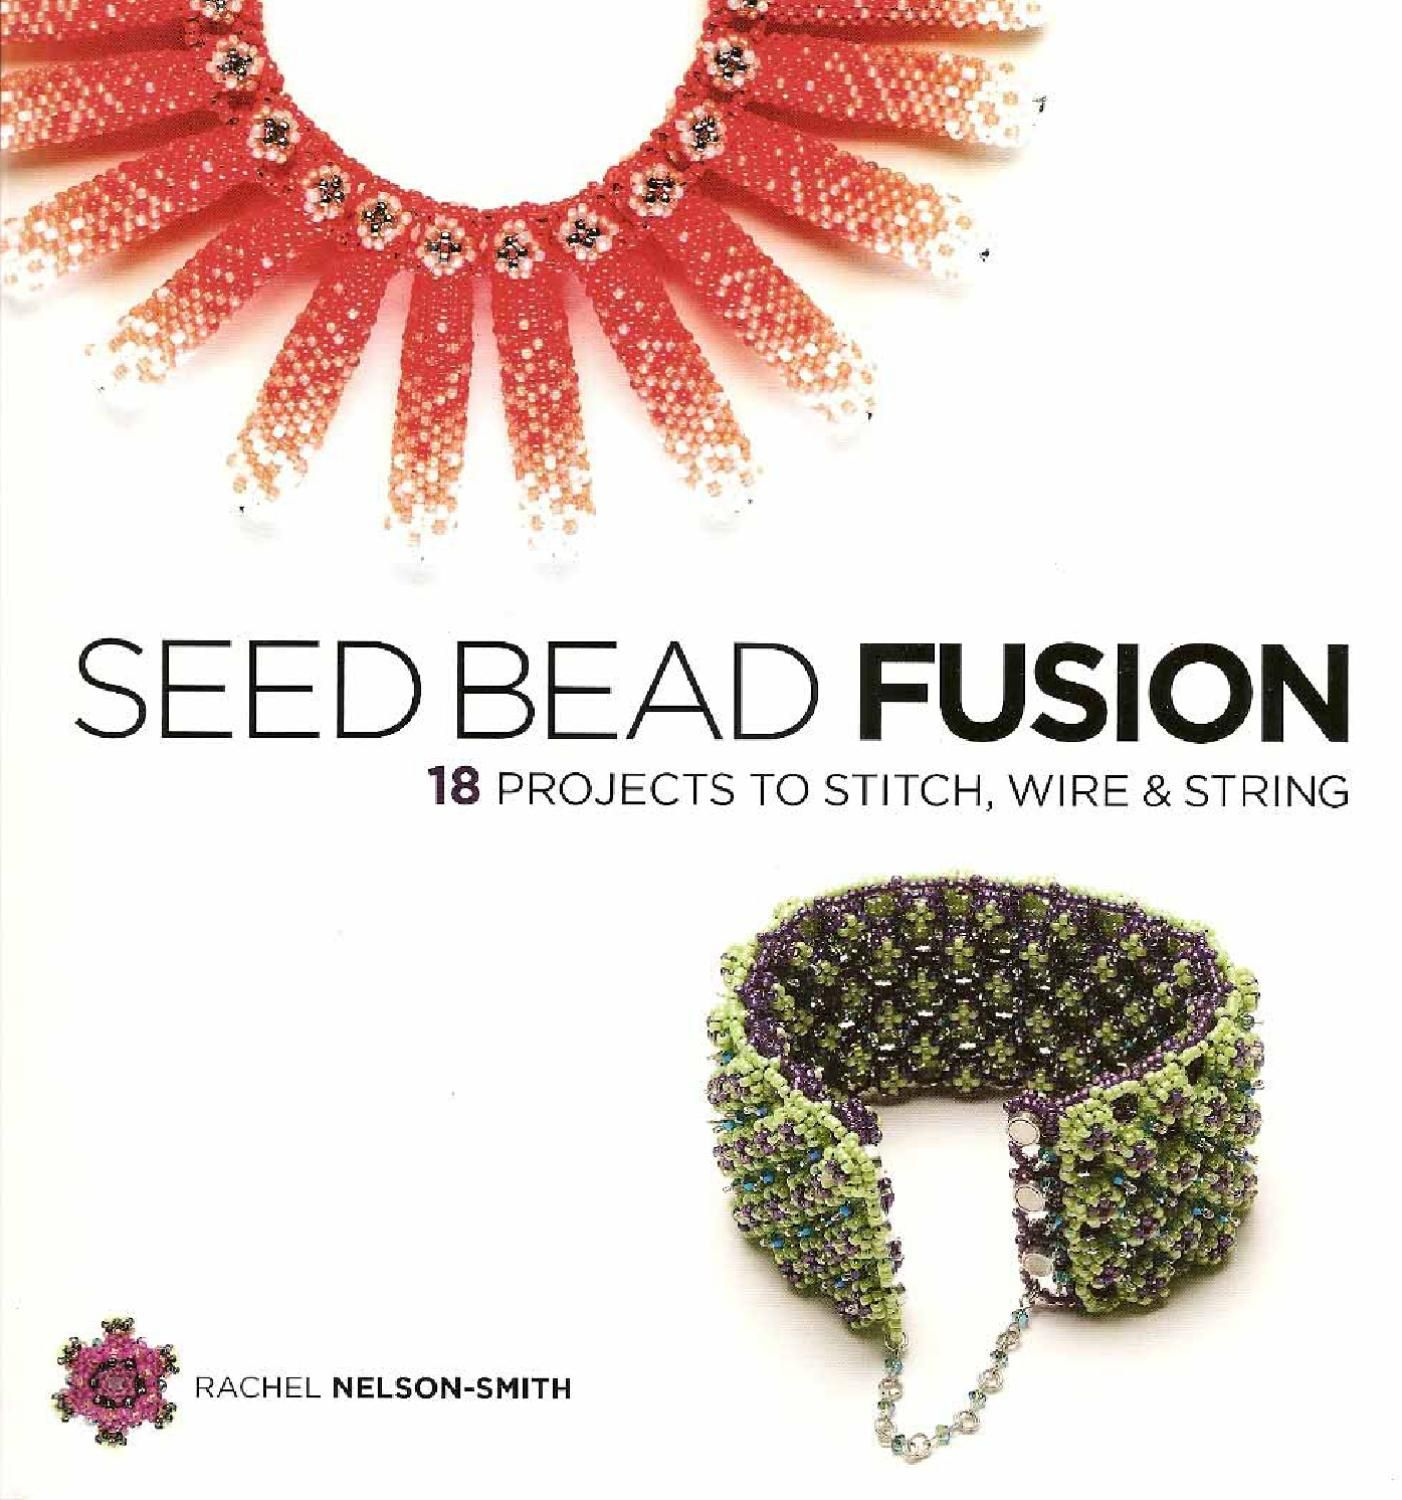 See Bead Fusion   Beads, Stitch and Bead weaving